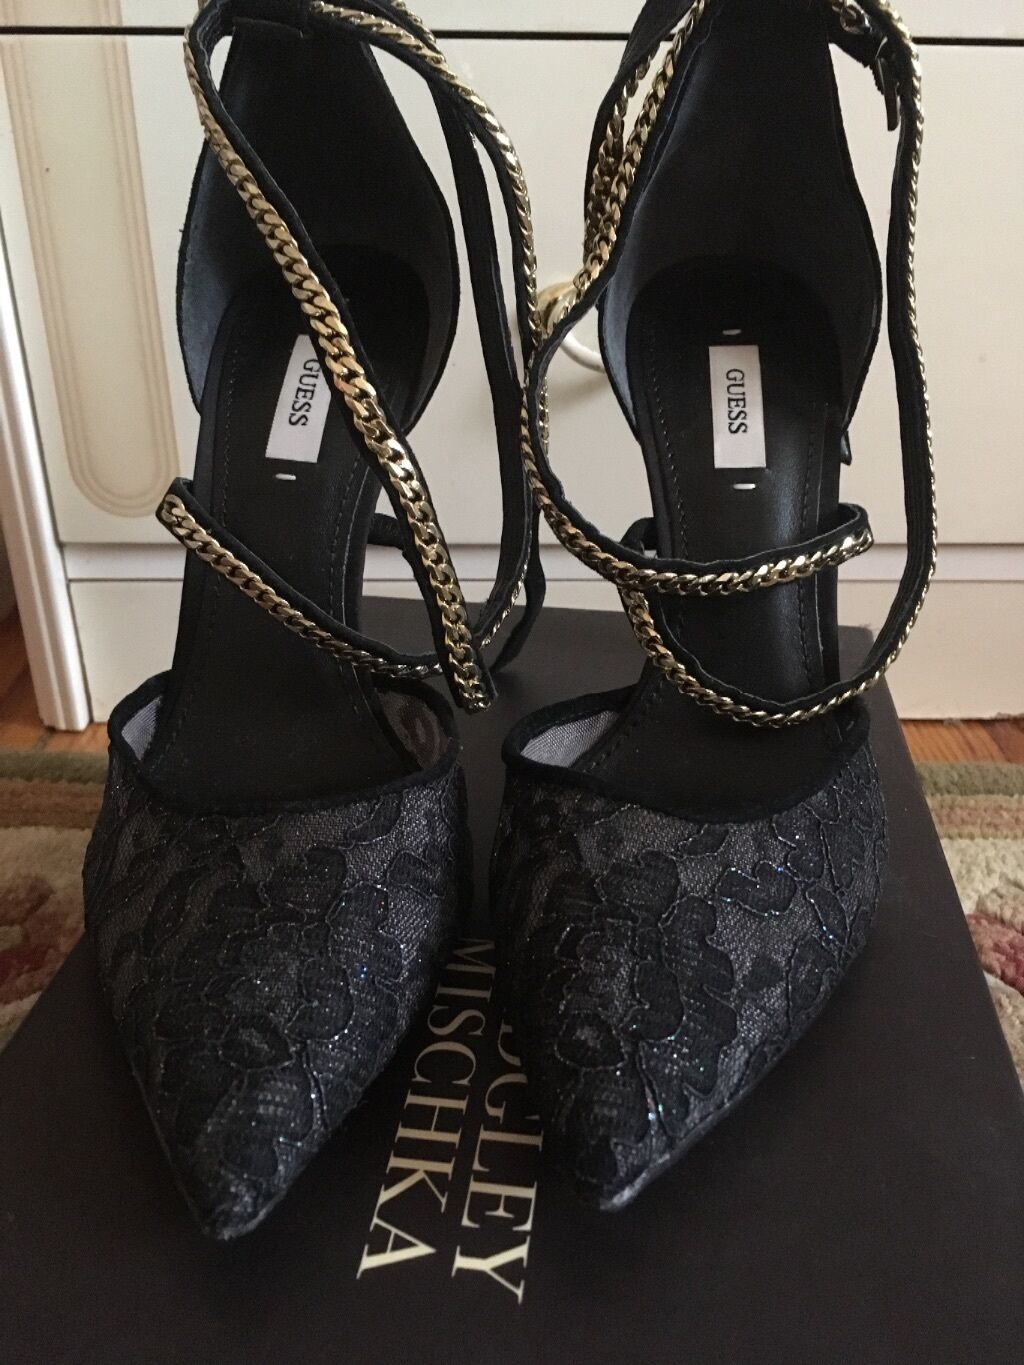 Lacr High heels Black and gold straps Size 9 1/2 GUESS